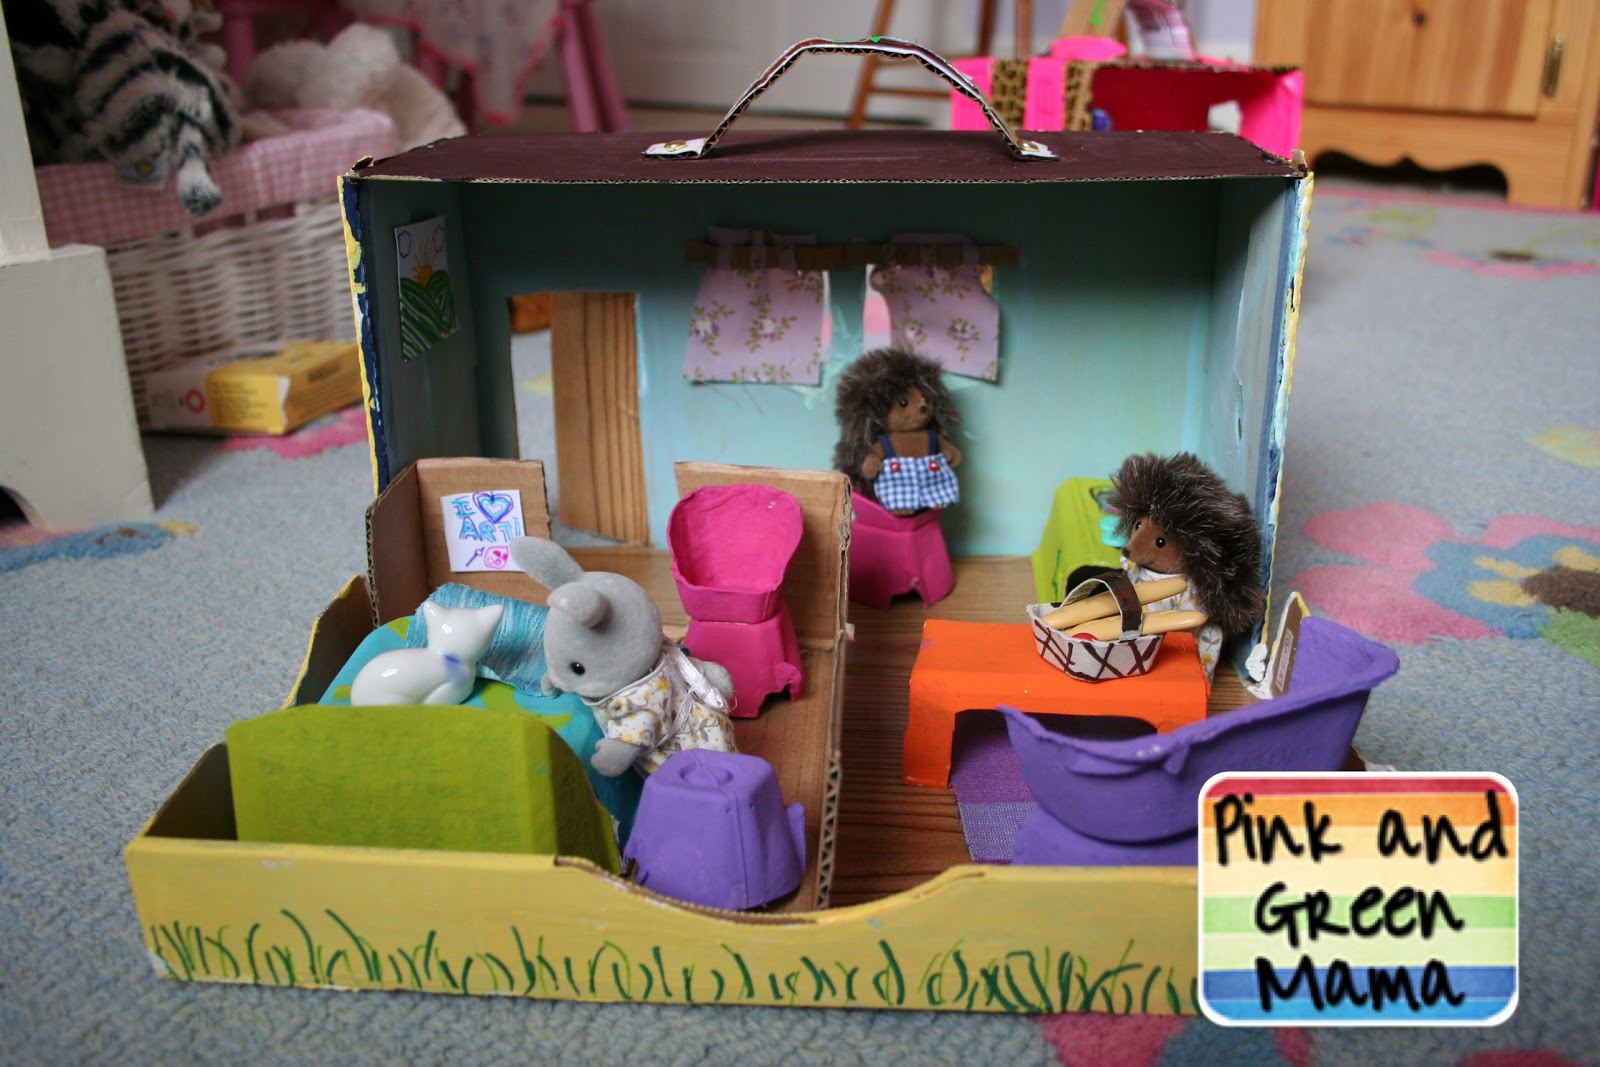 Pink And Green Mama Cardboard Shoe Box Play House With